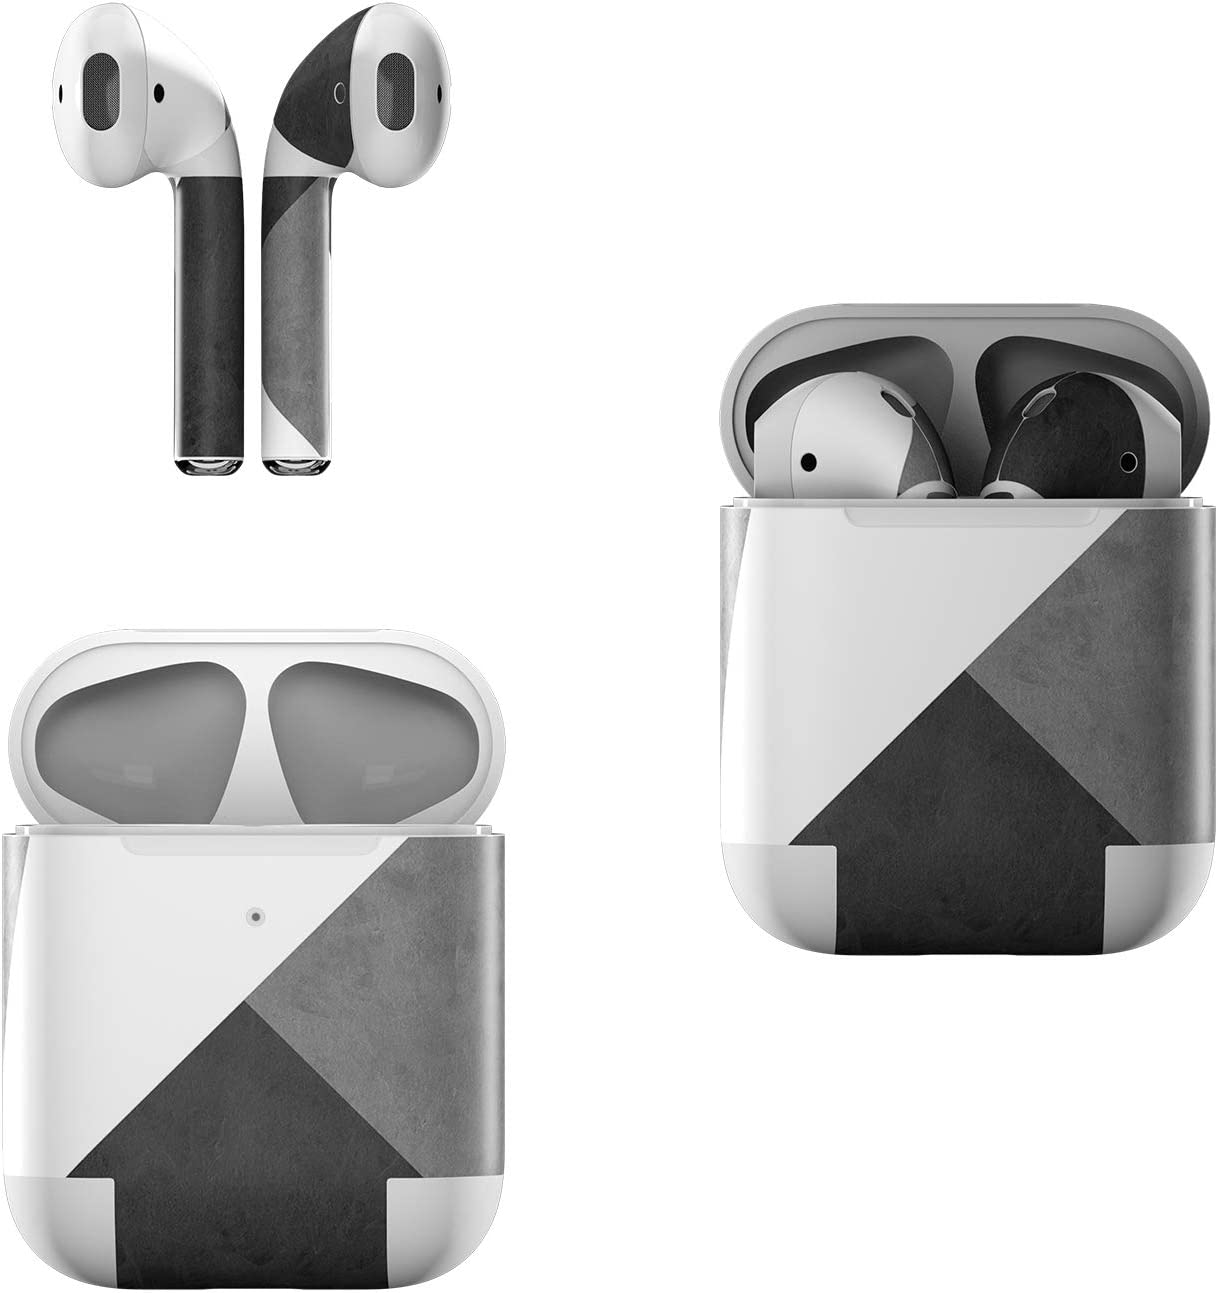 Skin Decals for Apple AirPods - Slate - Sticker Wrap Fits 1st and 2nd Generation